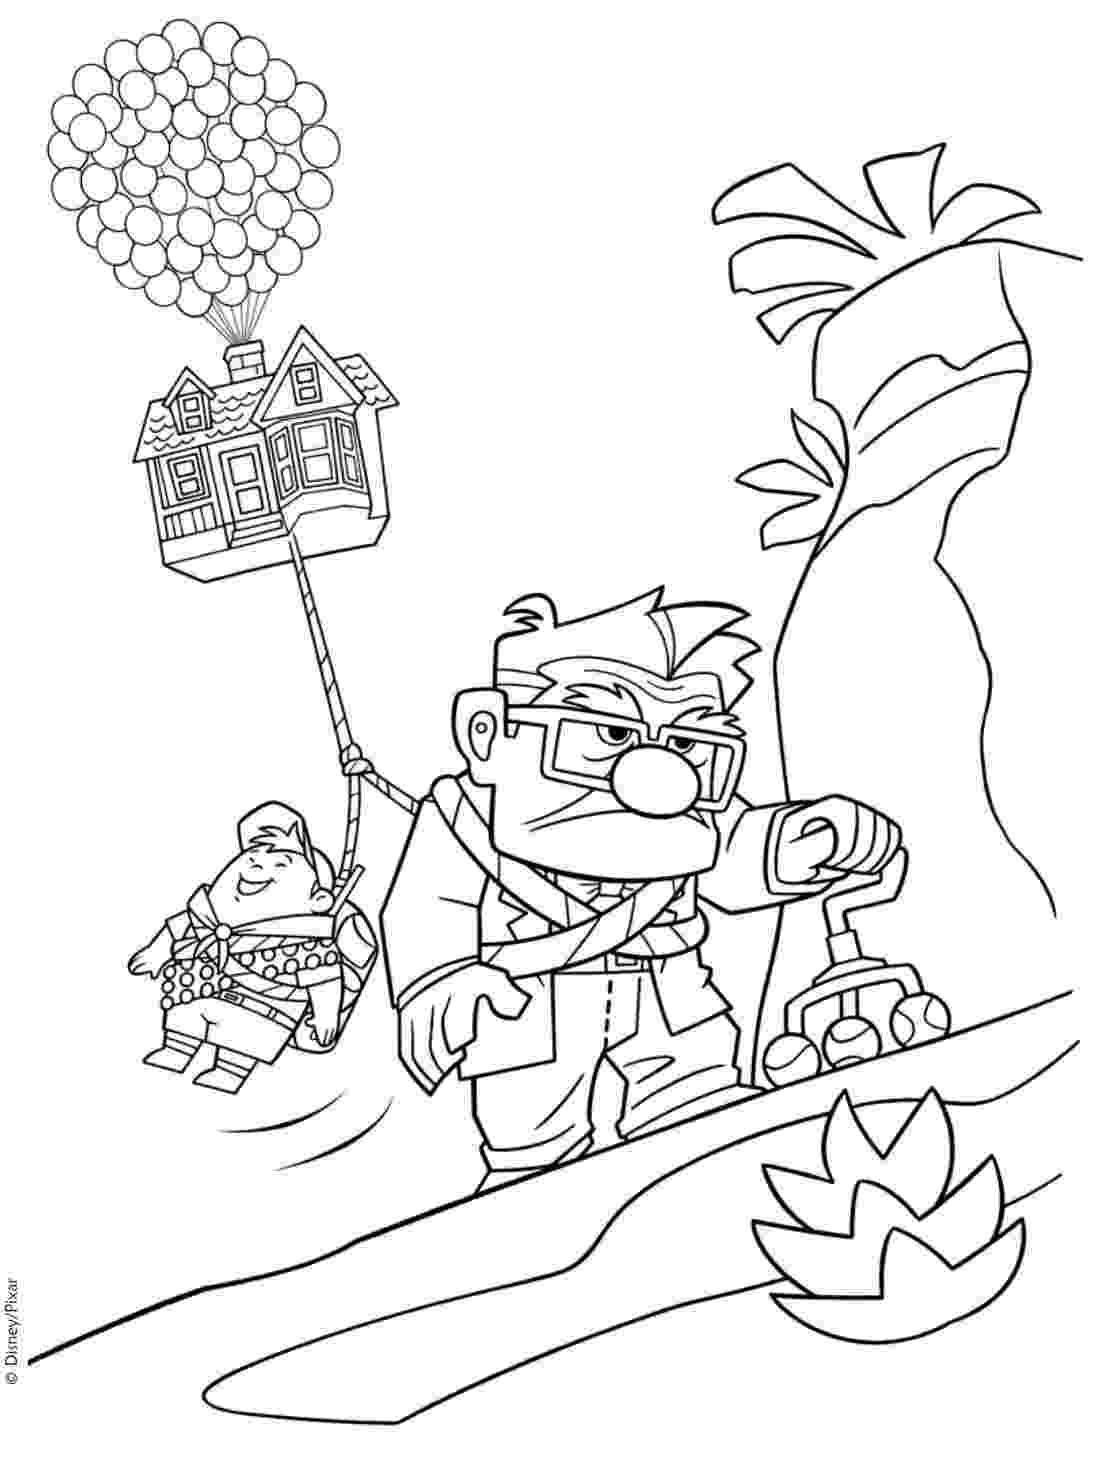 up coloring pages up to color for children up kids coloring pages pages up coloring